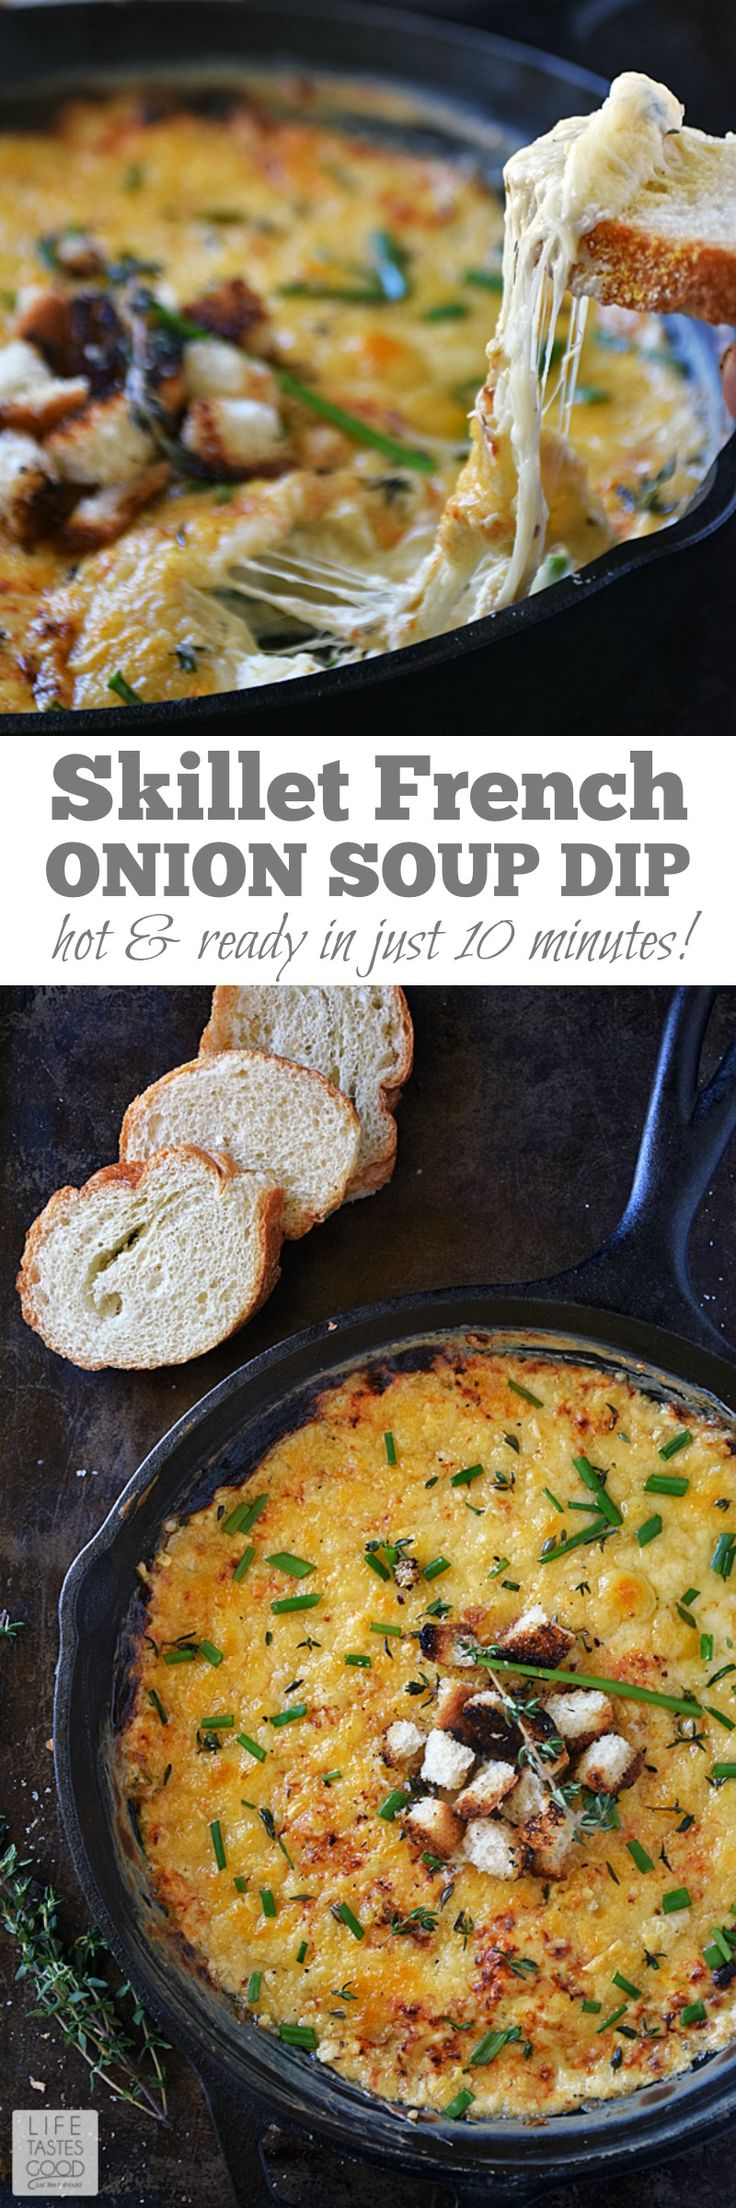 Creamy, cheesy, and savory, Skillet French Onion Soup Dip | by Life Tastes Good tastes like classic French Onion Soup and is so easy to make! Mixing the ingredients all in one skillet, while heating, is the key to having it hot and ready in just 10 minutes! This delicious appetizer is a real crowd pleaser! #gamedayrecipes #LTGrecipes #footballappetizers #cheesediprecipes #frenchonionsoup